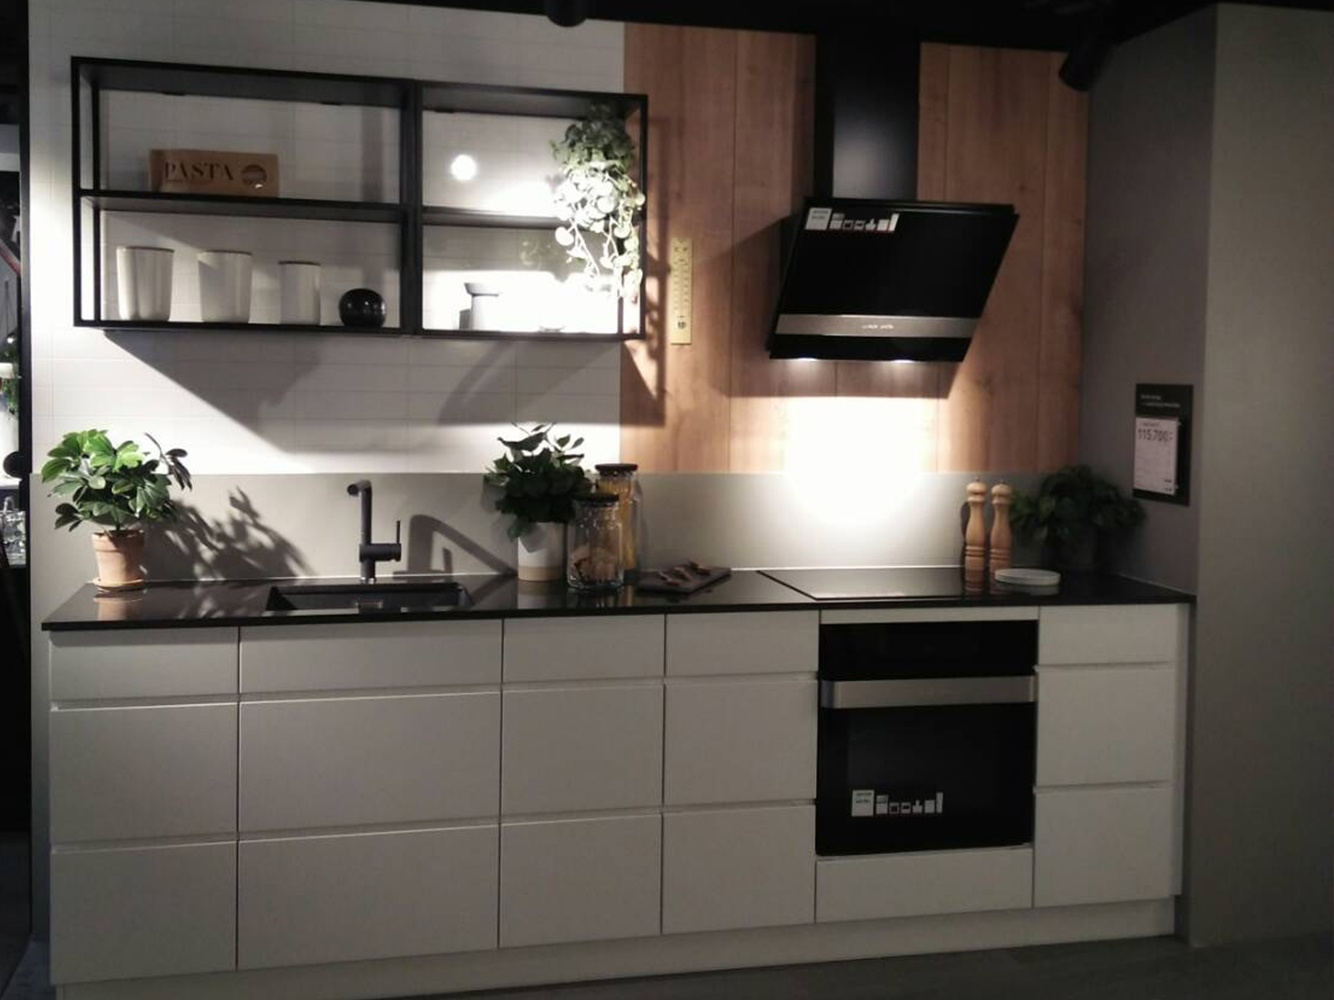 Mano matte kitchen thonglor.jpg